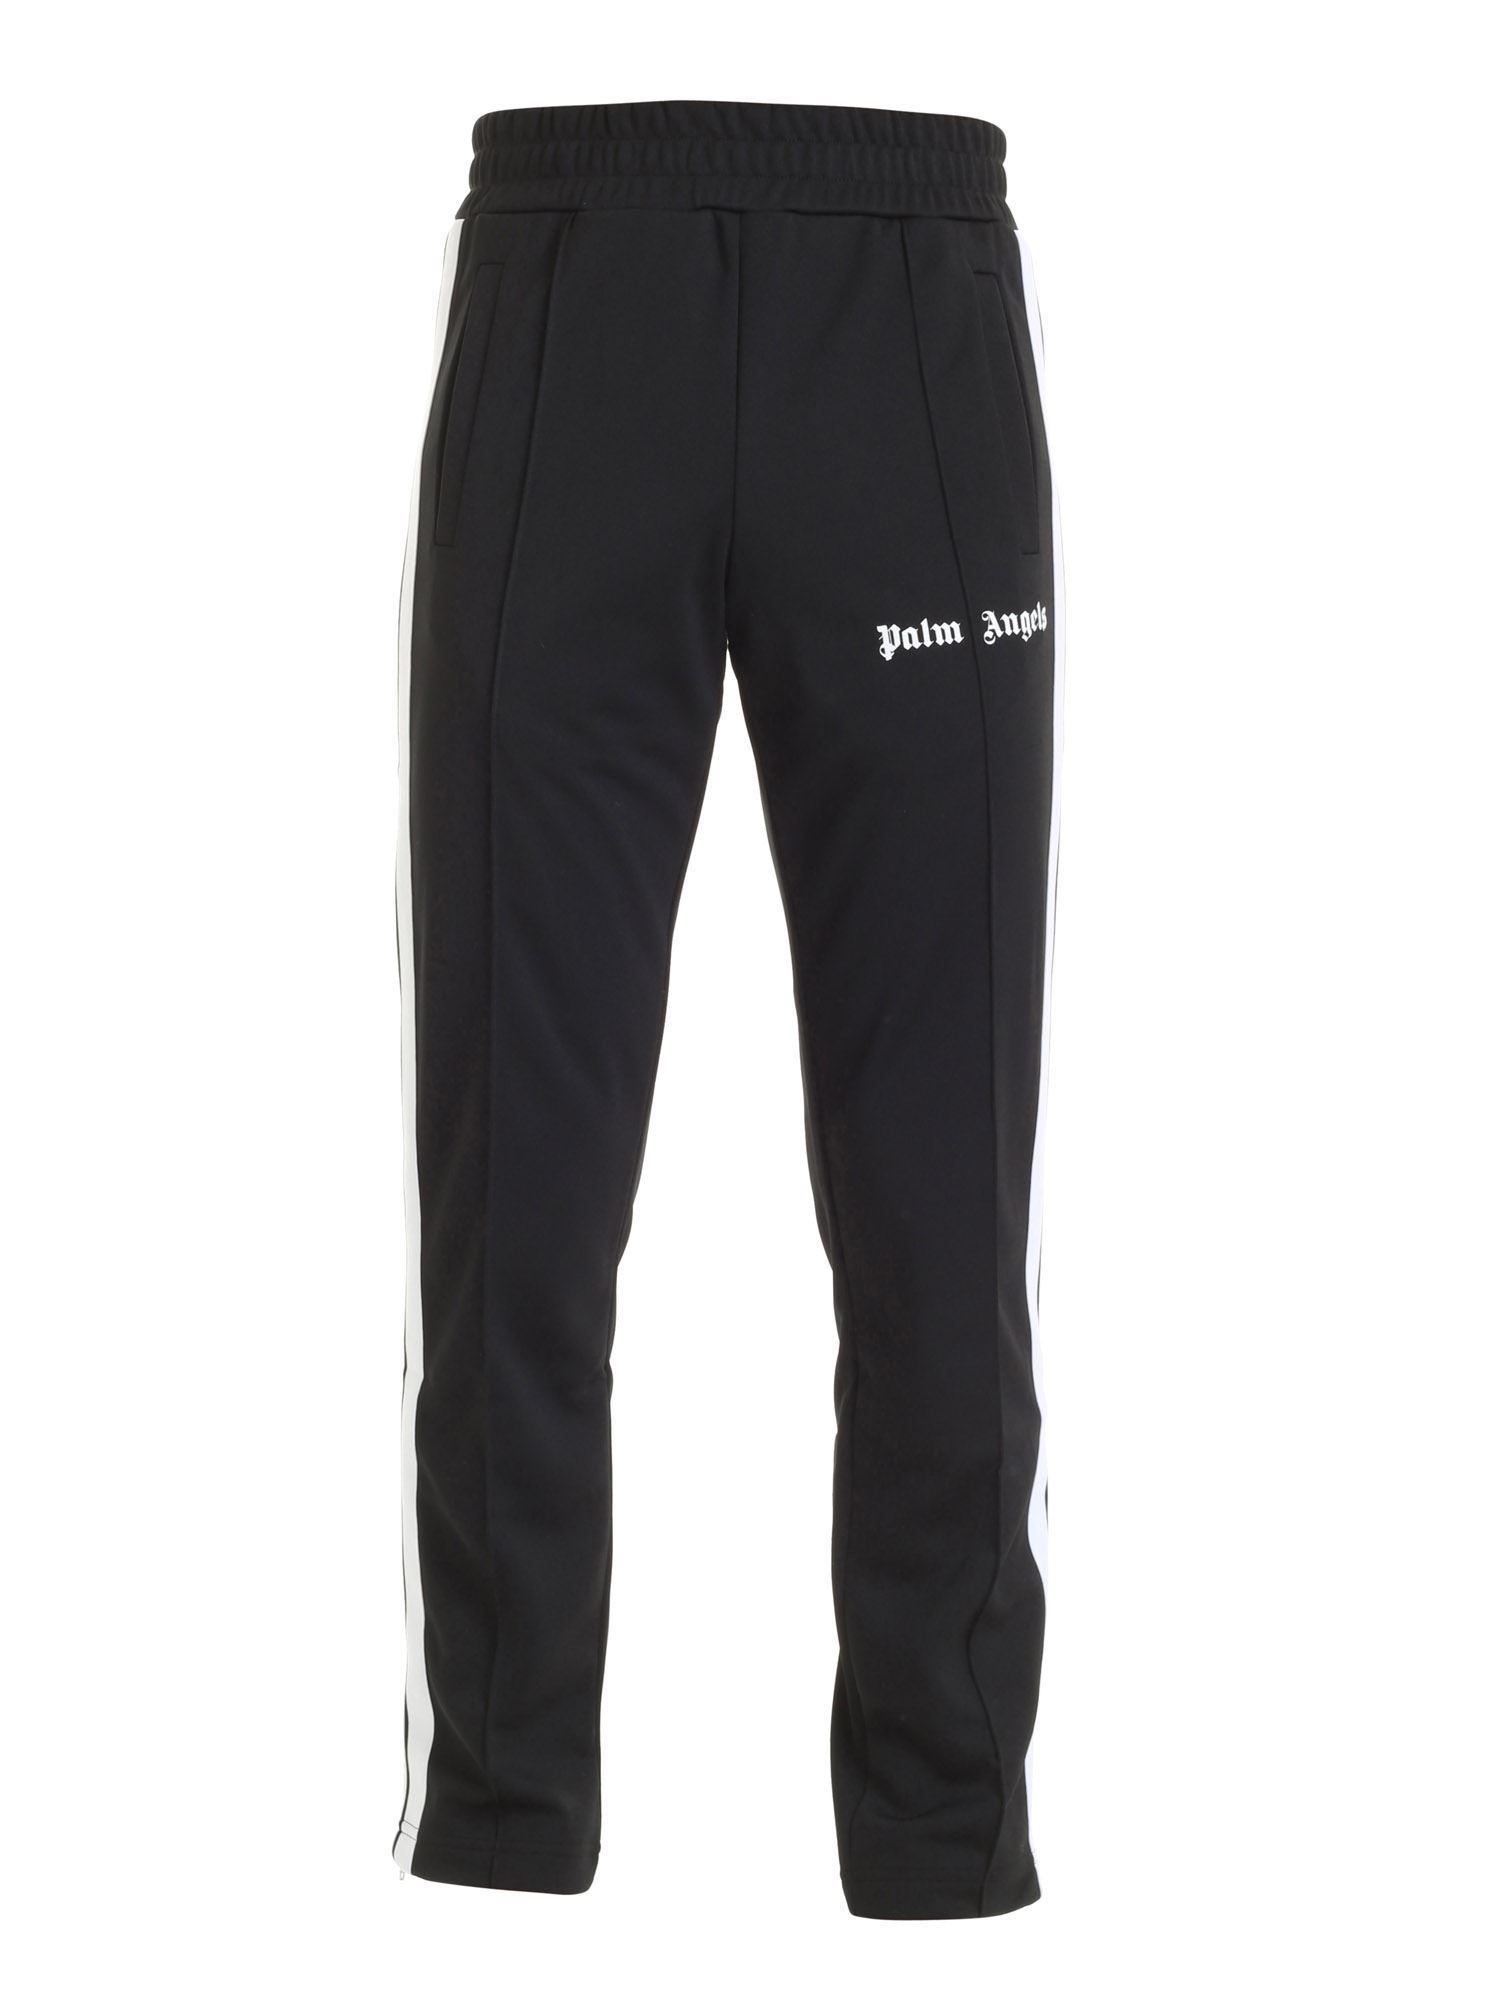 Palm Angels CLASSIC TRACK PANTS IN BLACK